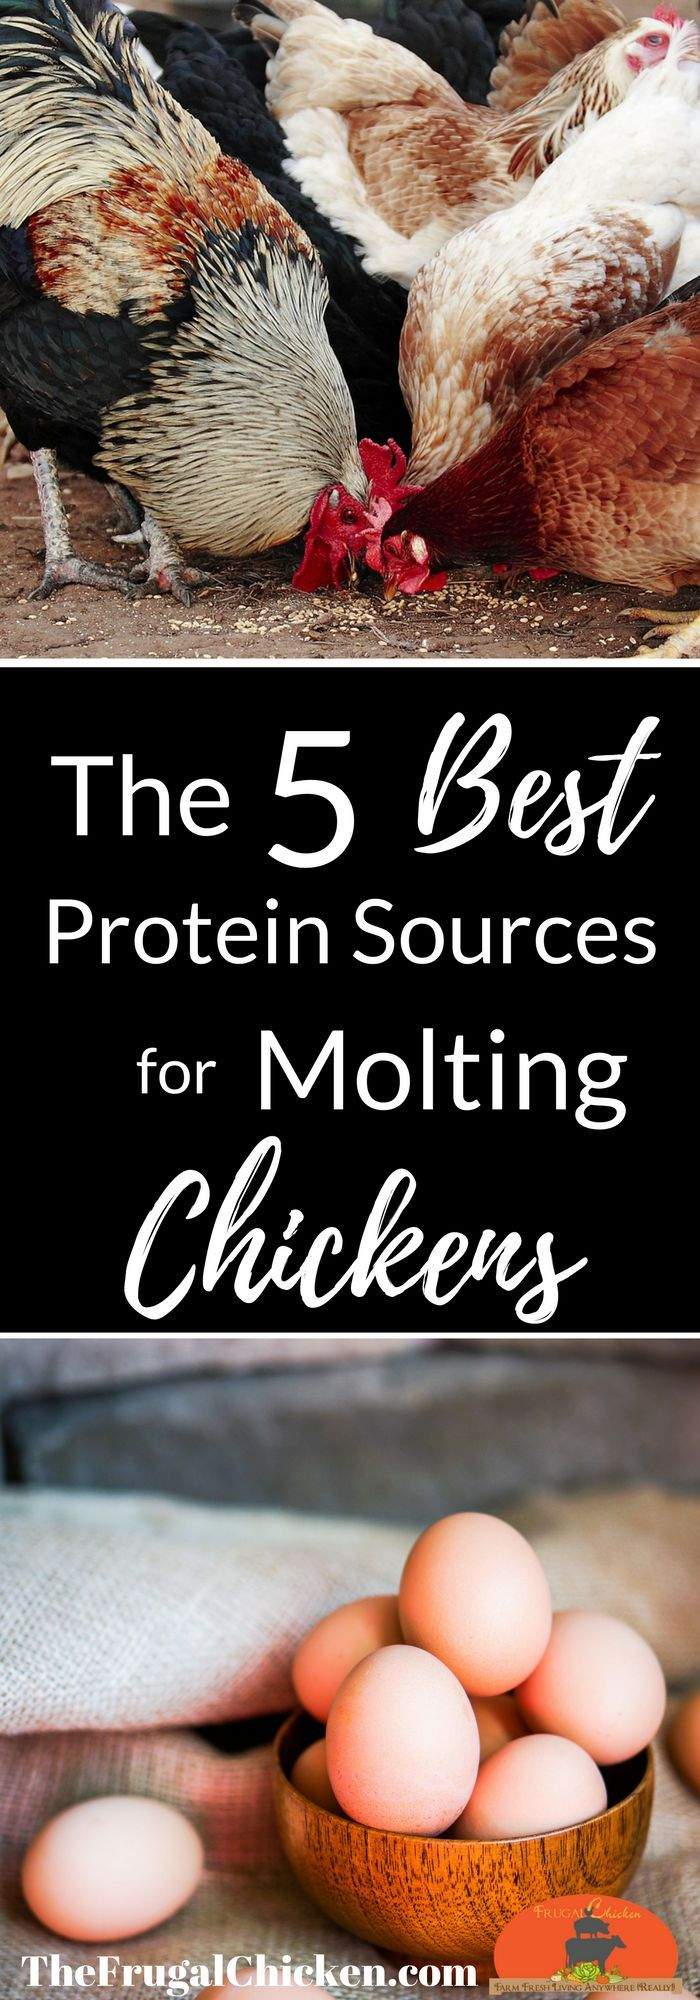 When your backyard chickens start to molt and lose their feathers, they will need extra protein. Here's the best protein sources for molting chickens.